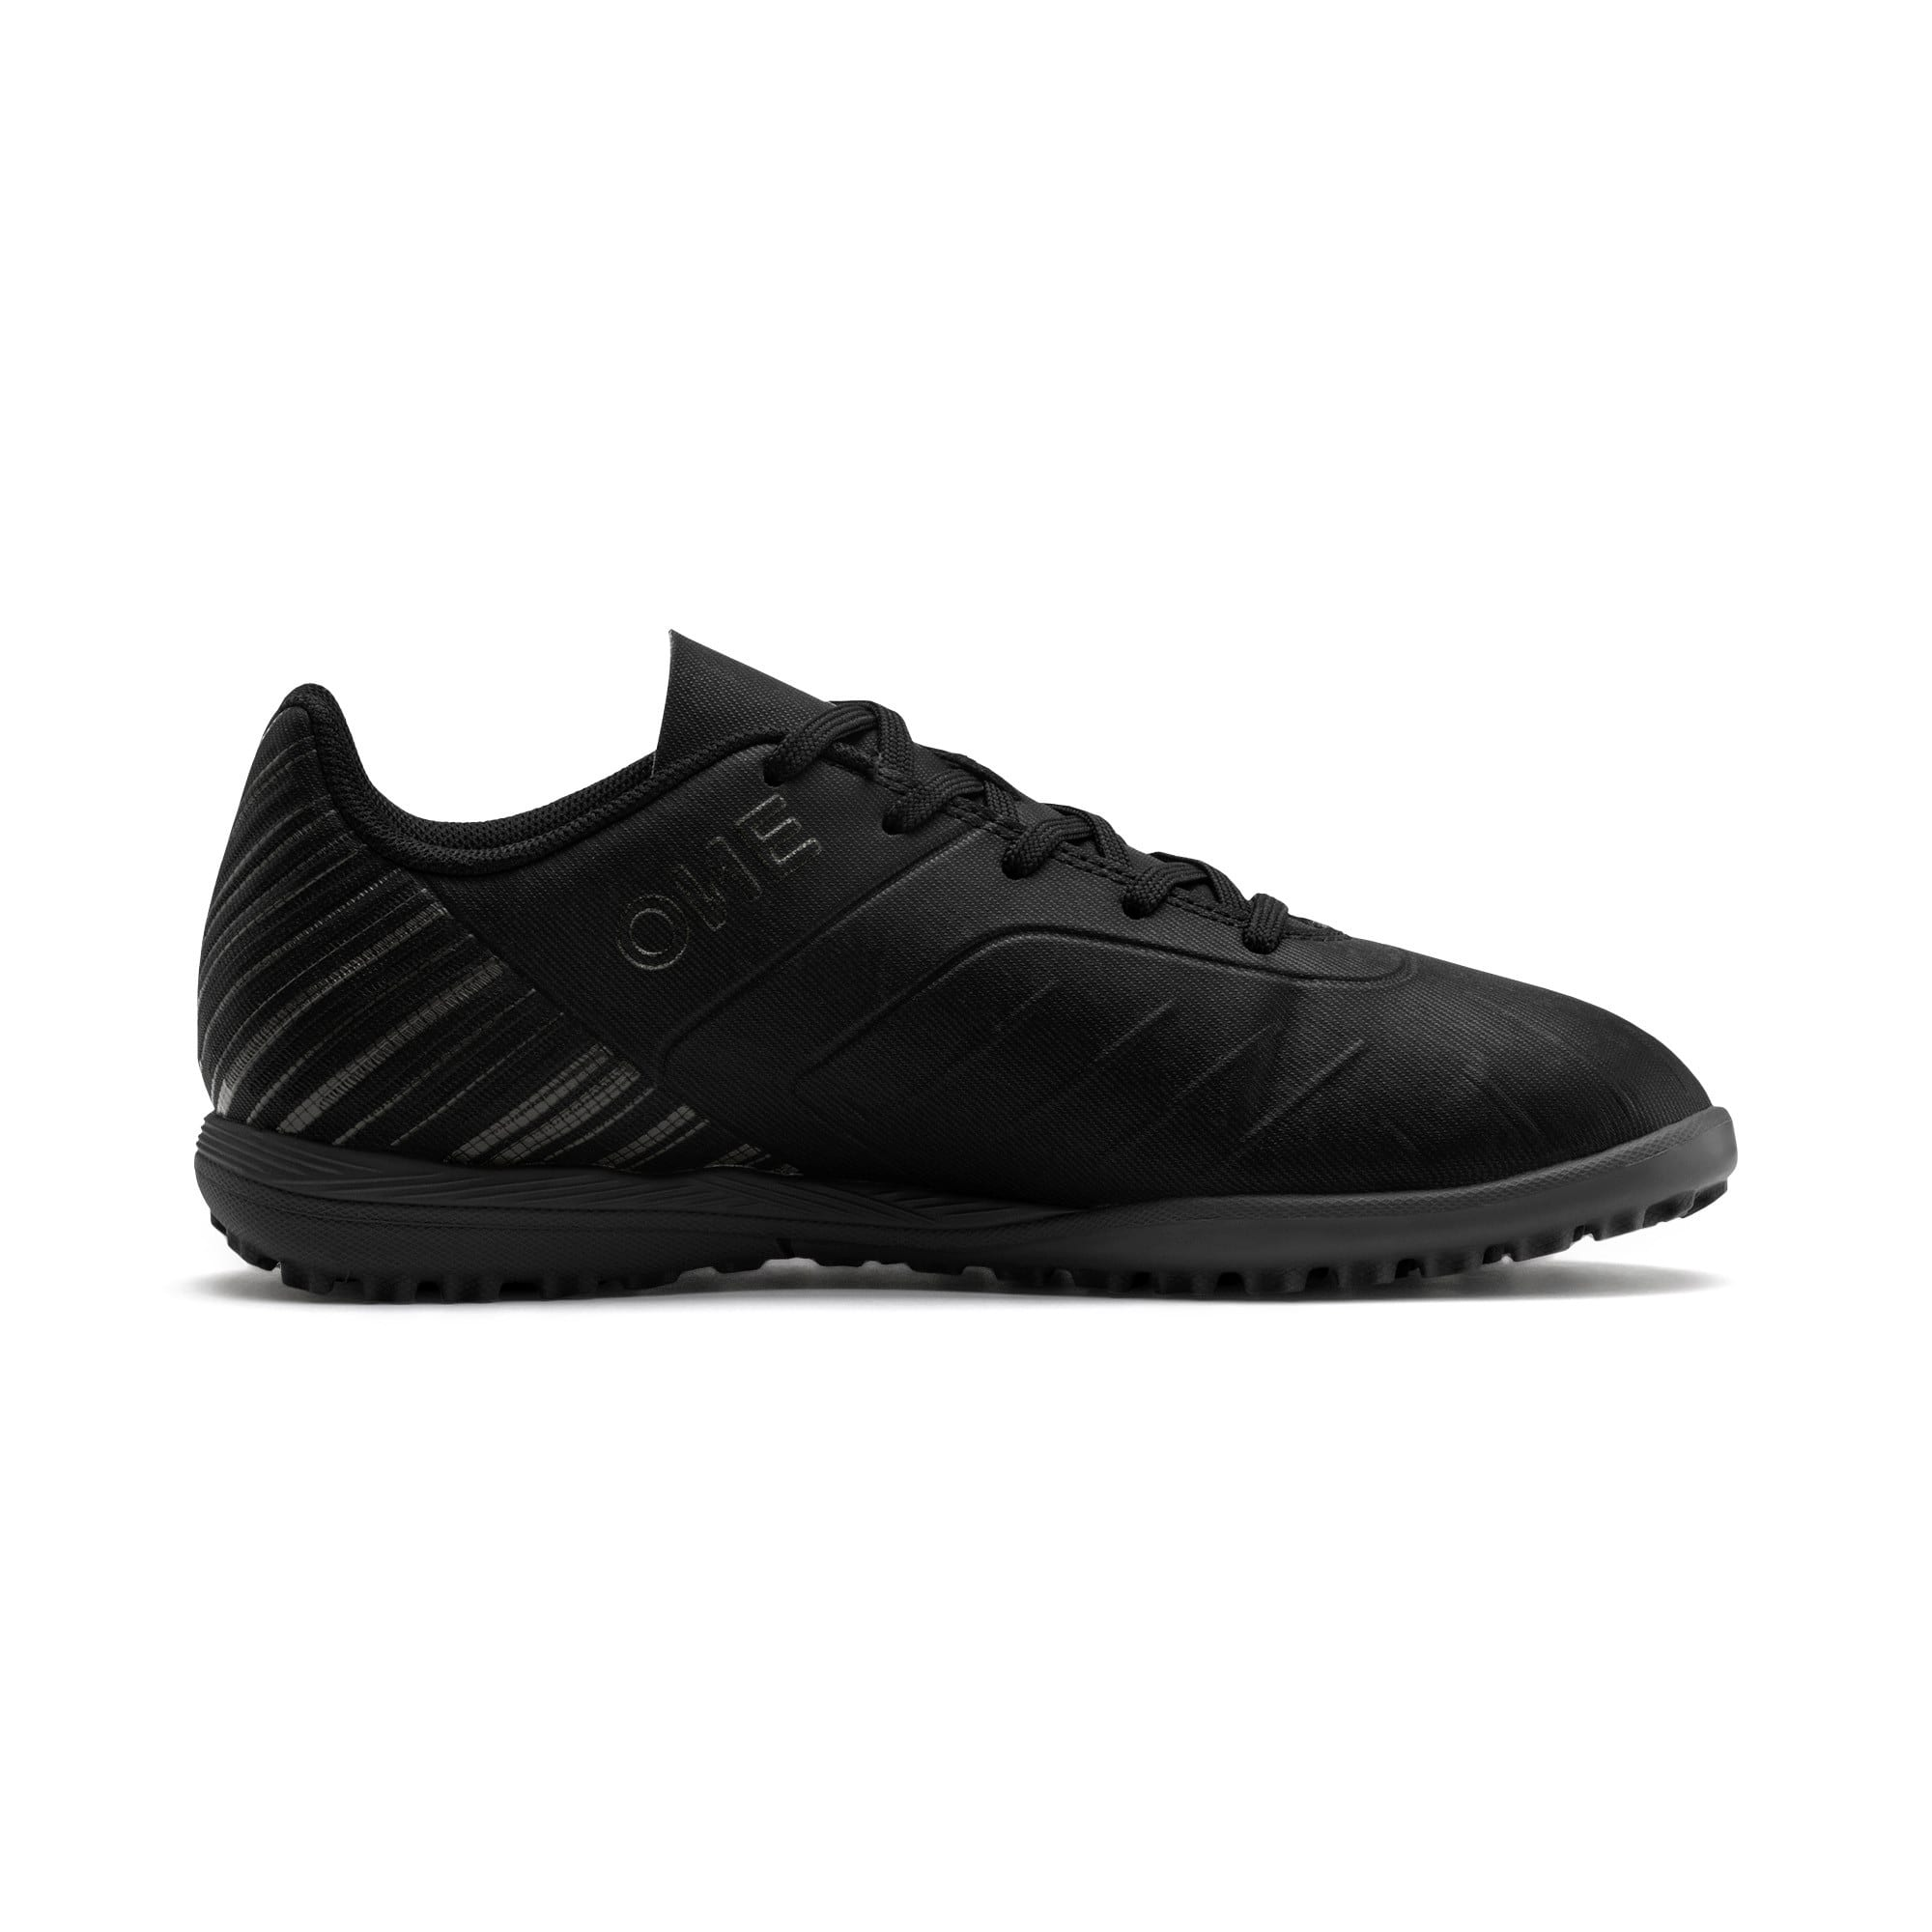 Thumbnail 5 of PUMA ONE 5.4 TT Youth Football Boots, Black-Black-Puma Aged Silver, medium